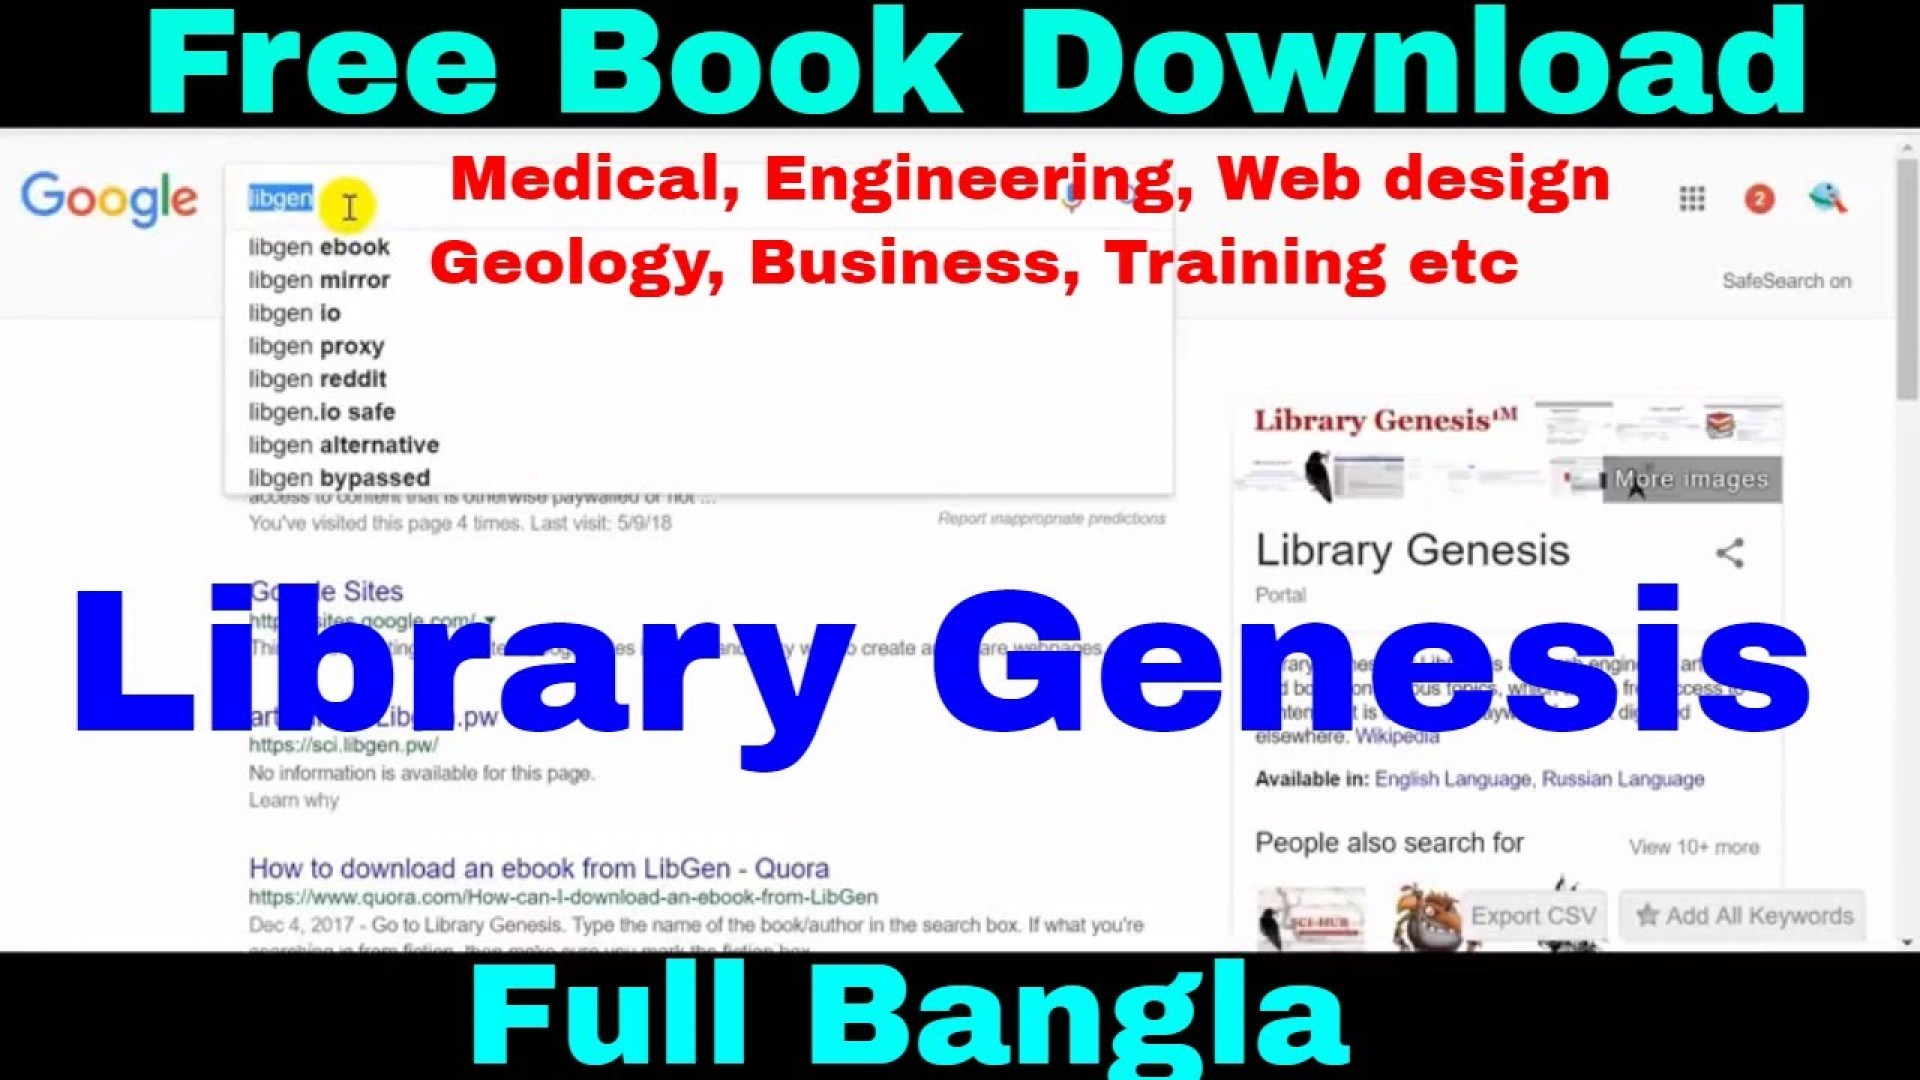 015 Maxresdefault Best Site To Download Researchs Free Unbelievable Research Papers How From Researchgate Springer Sciencedirect 1920